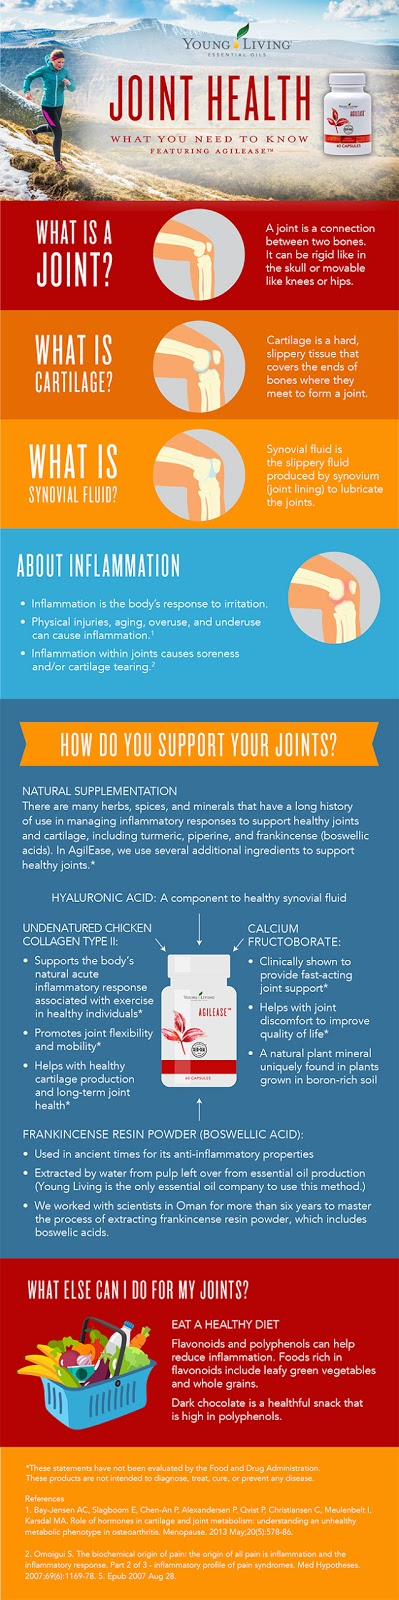 Keeping our Joints Healthy